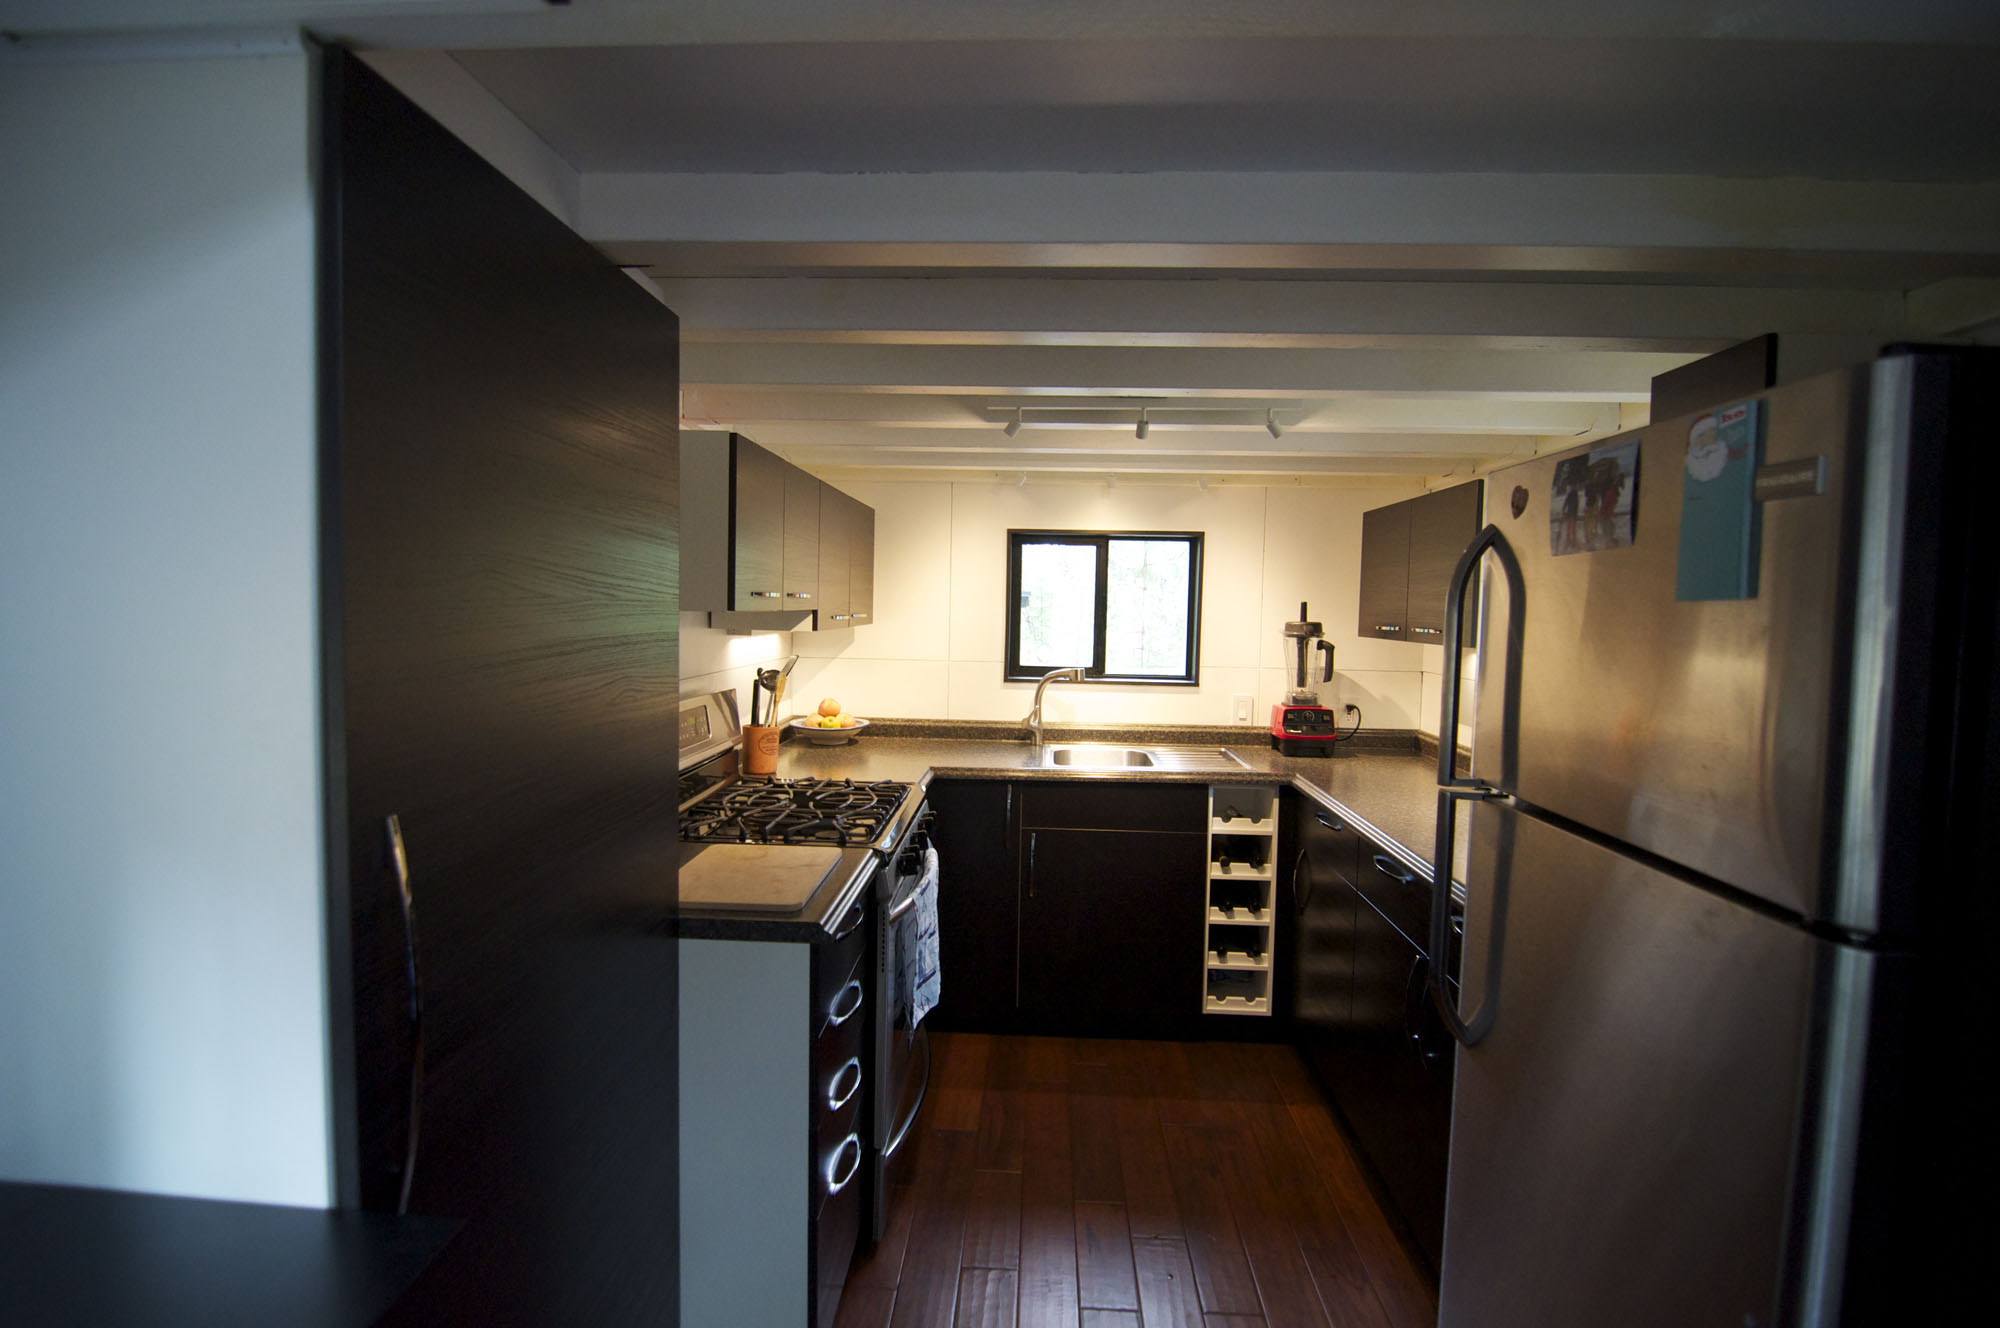 Tiny house on wheels home by andrew and gabriella morrison Kitchen design for tiny house